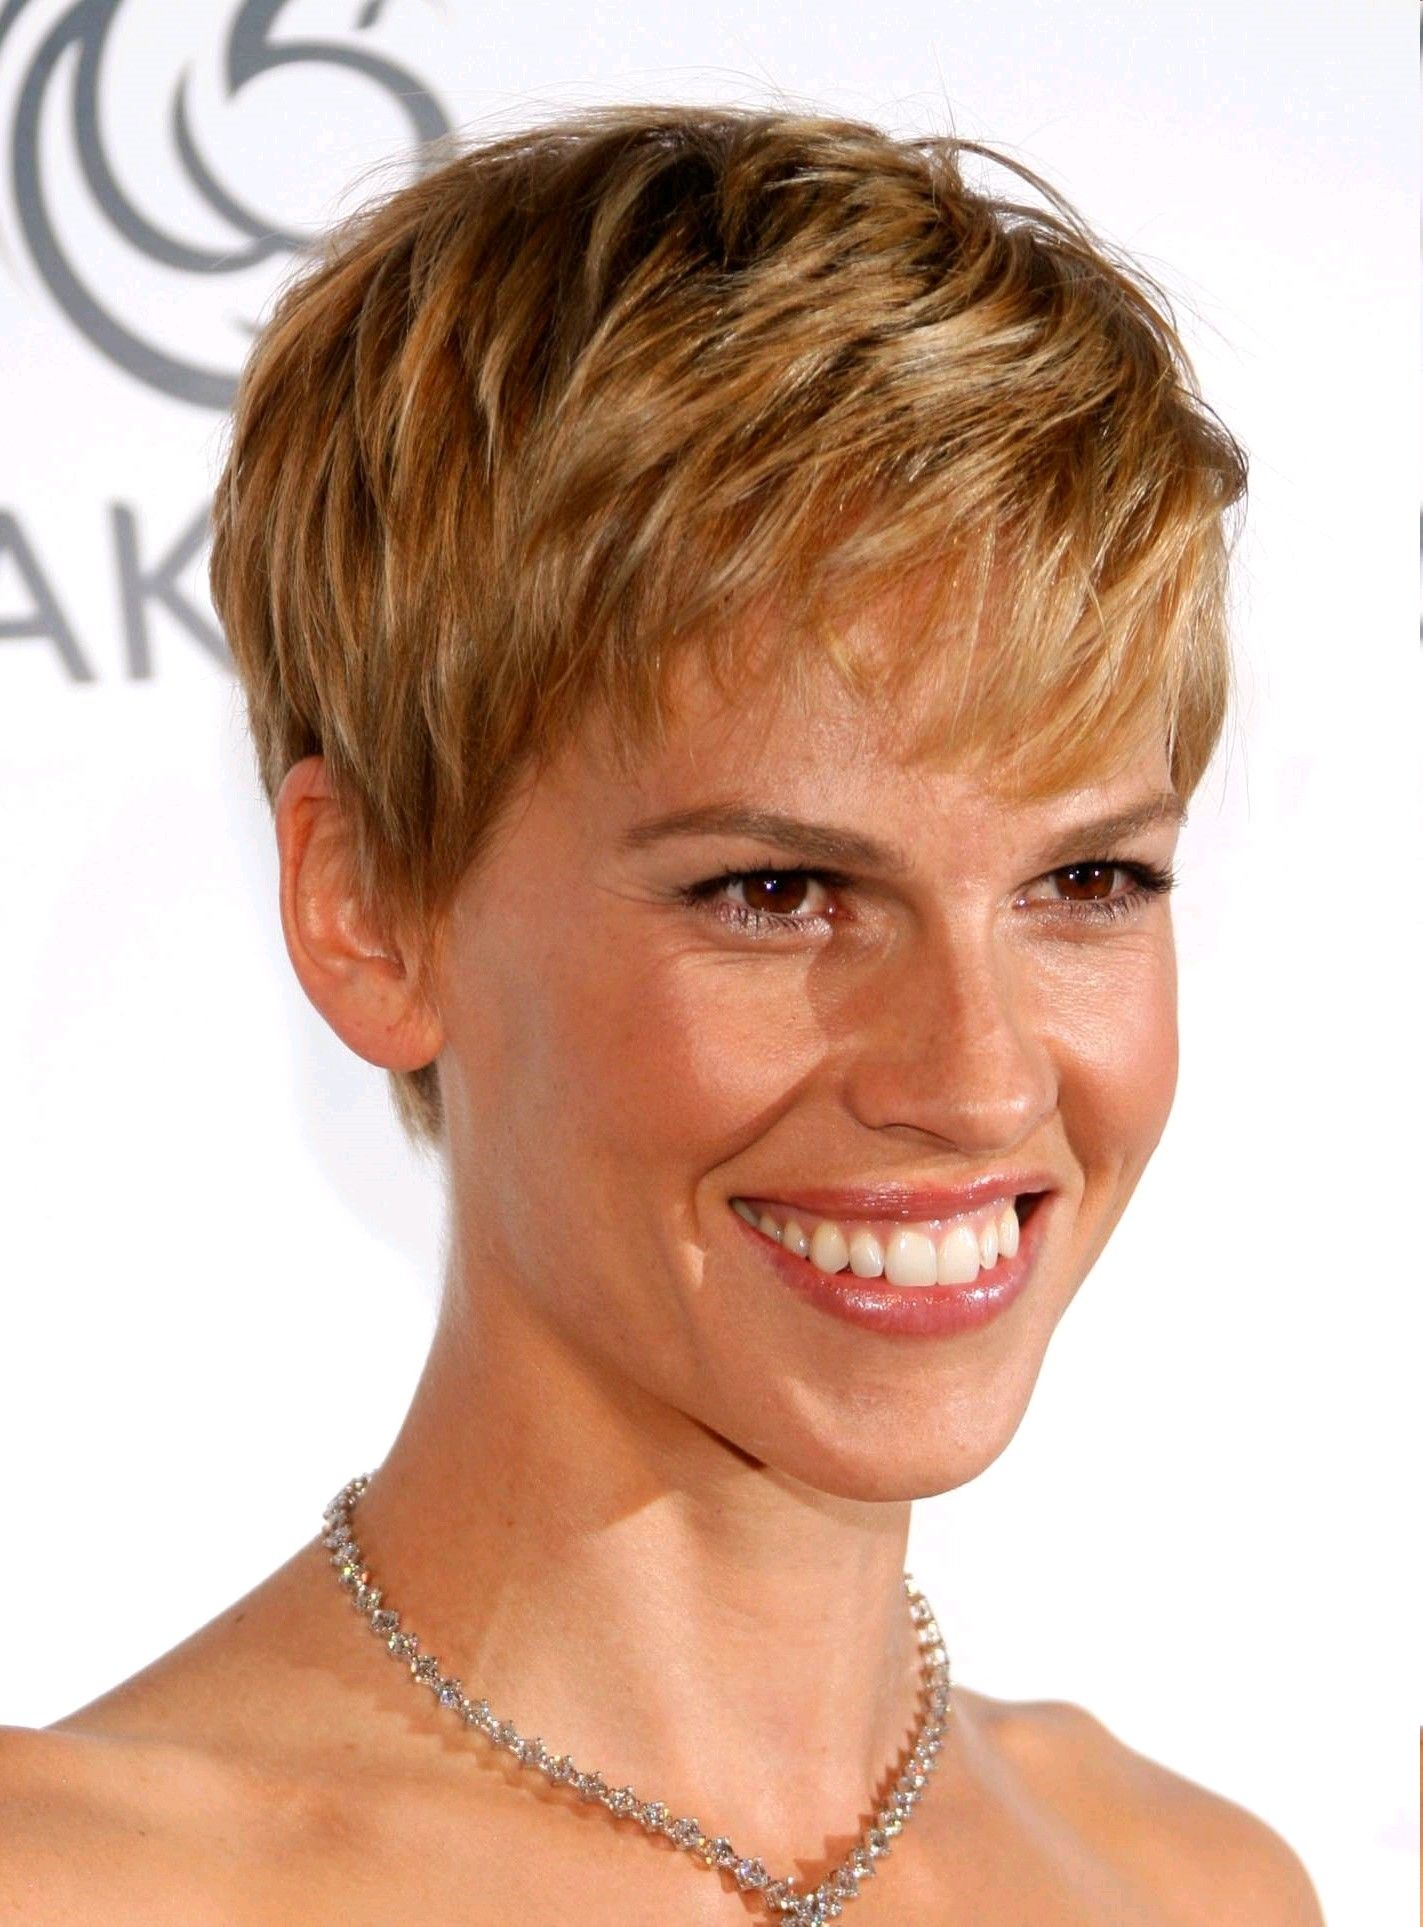 Short Celebrity Hairstyles for Women - short-haircut.com